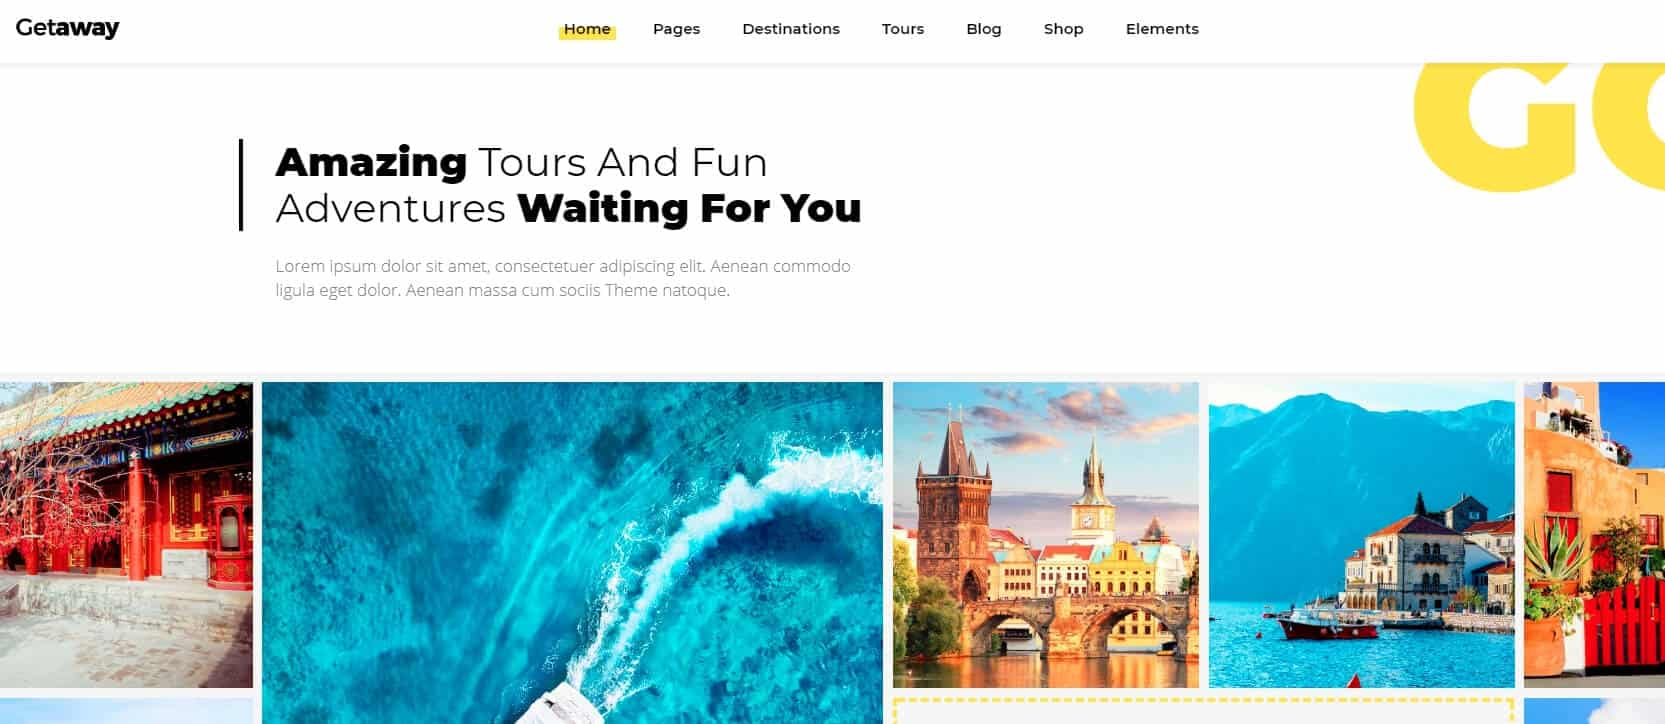 Getaway – An Upbeat Travel and Tourism Theme